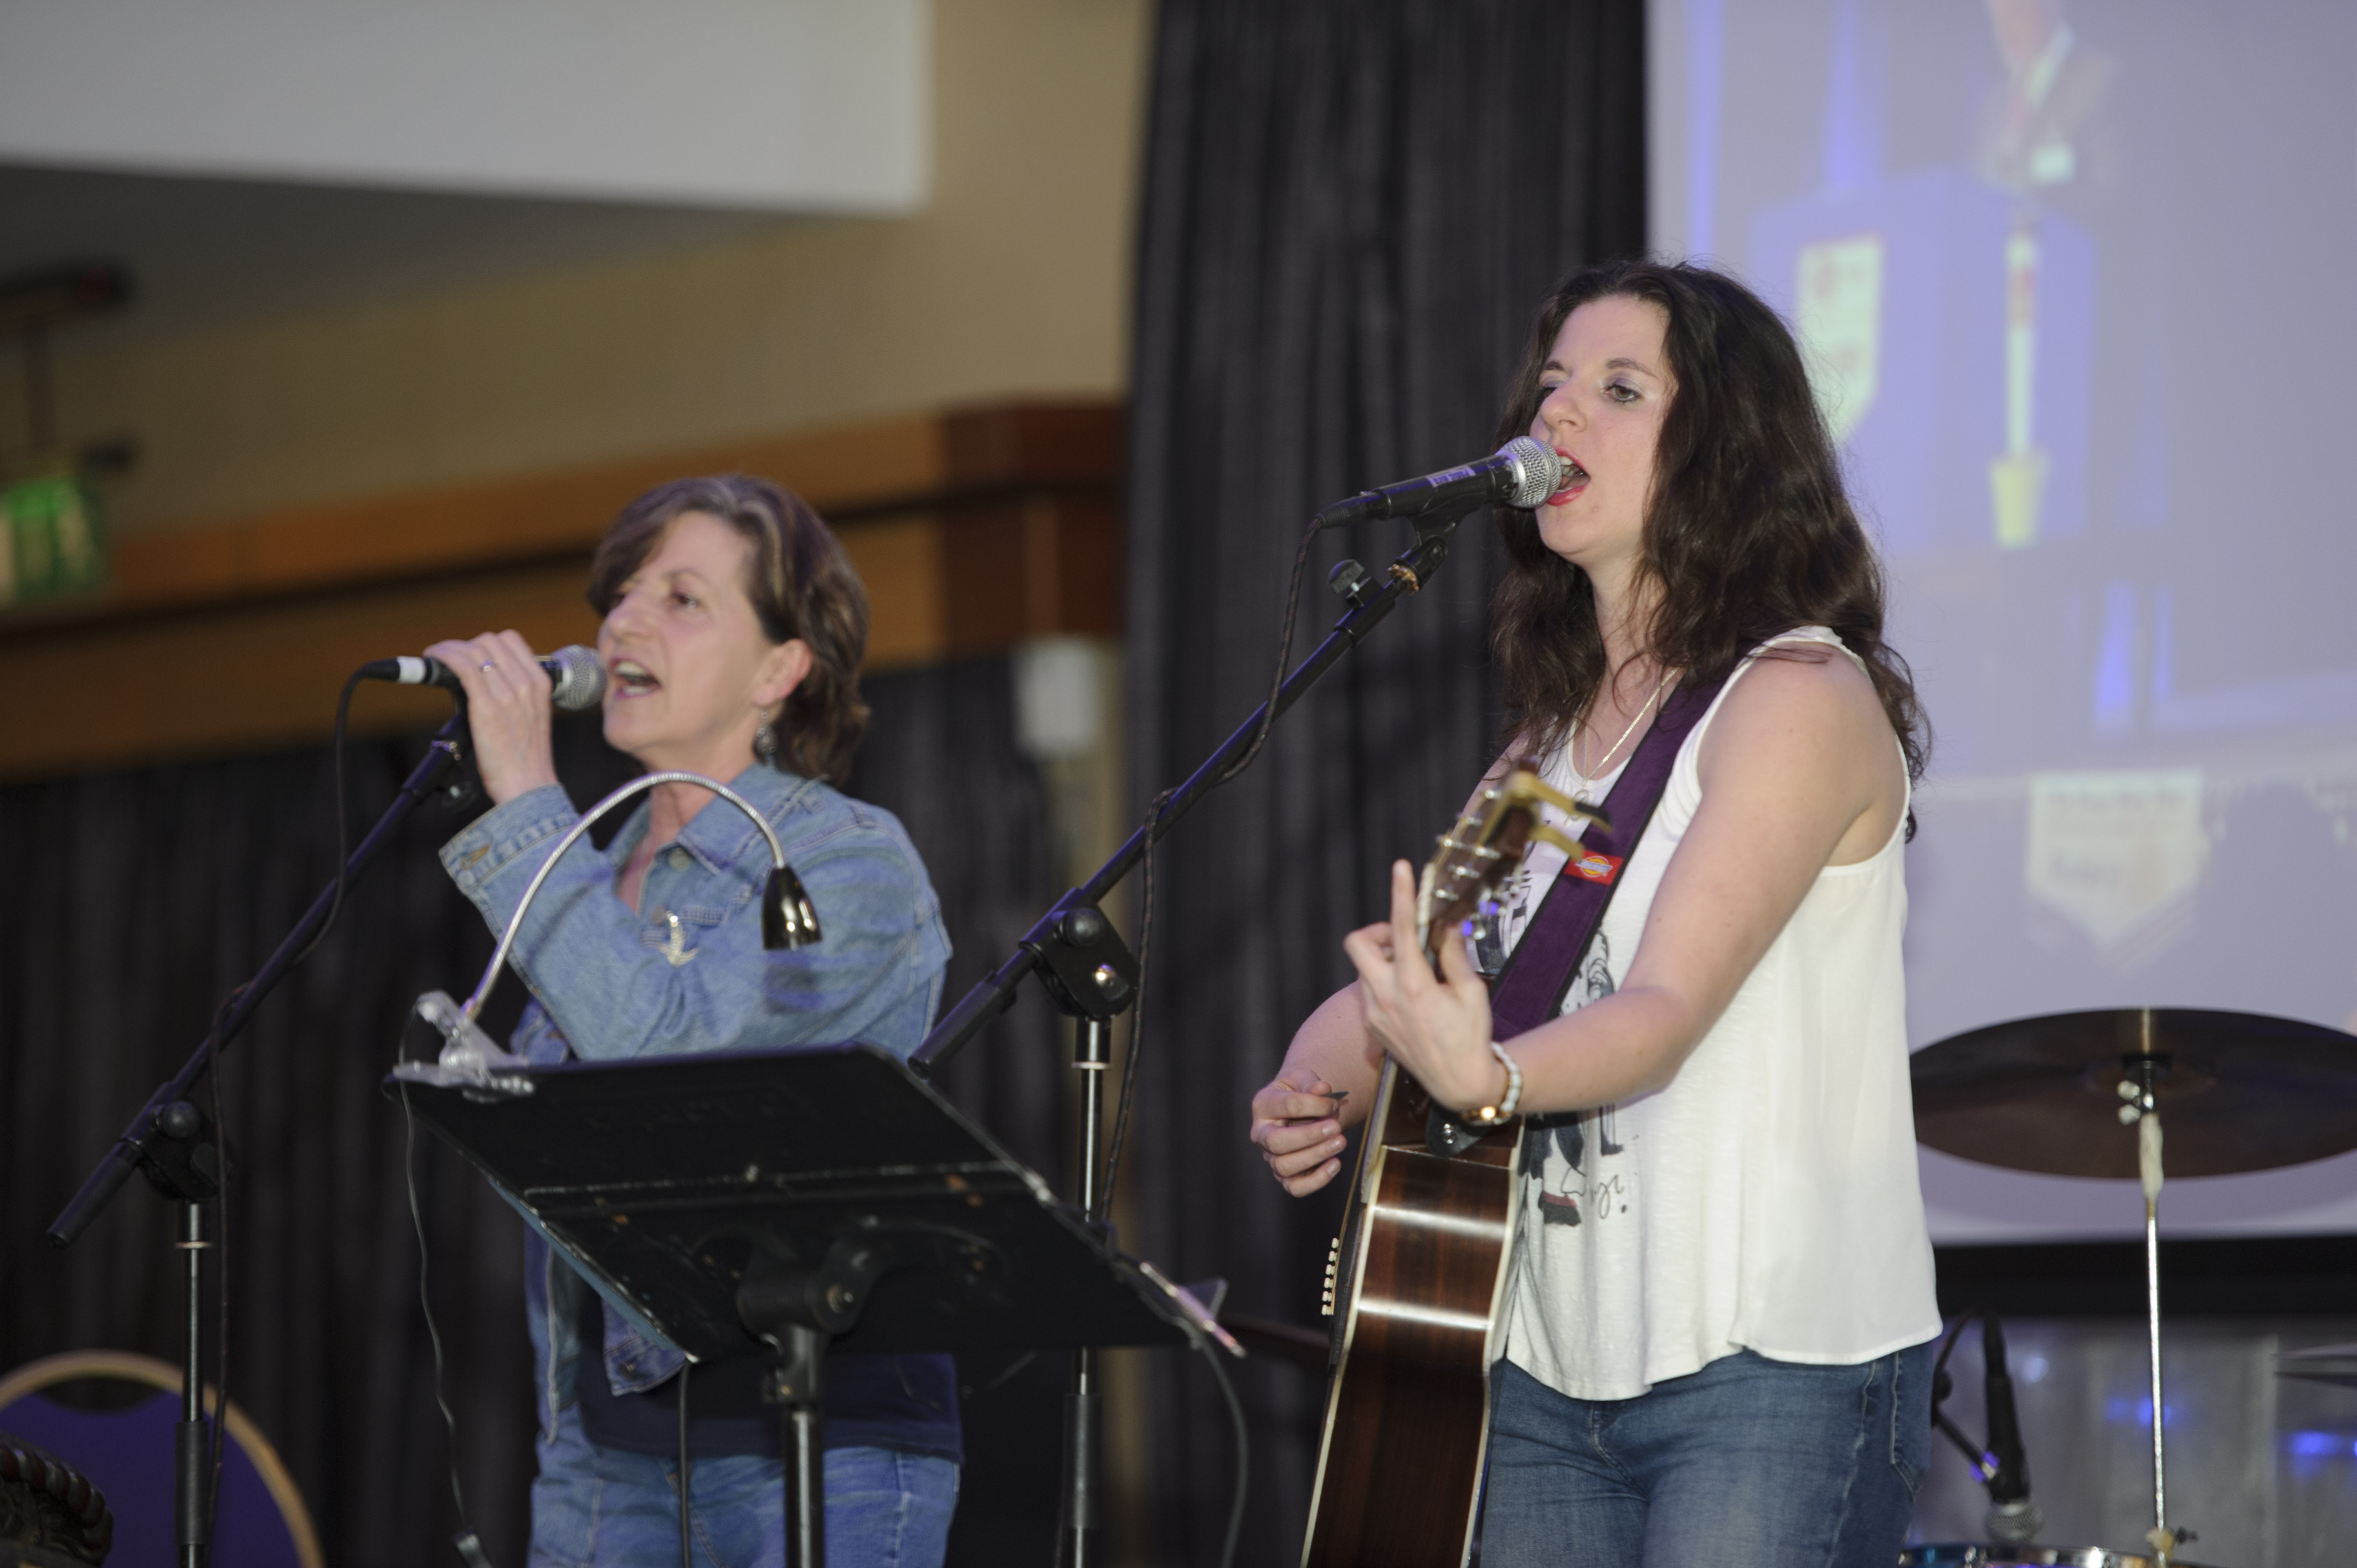 Clara Rose and Liz Deery playing at Pat The President's Country Music & Western Night for Monaghan Rotary Club. ©Rory Geary/The Northern Standard